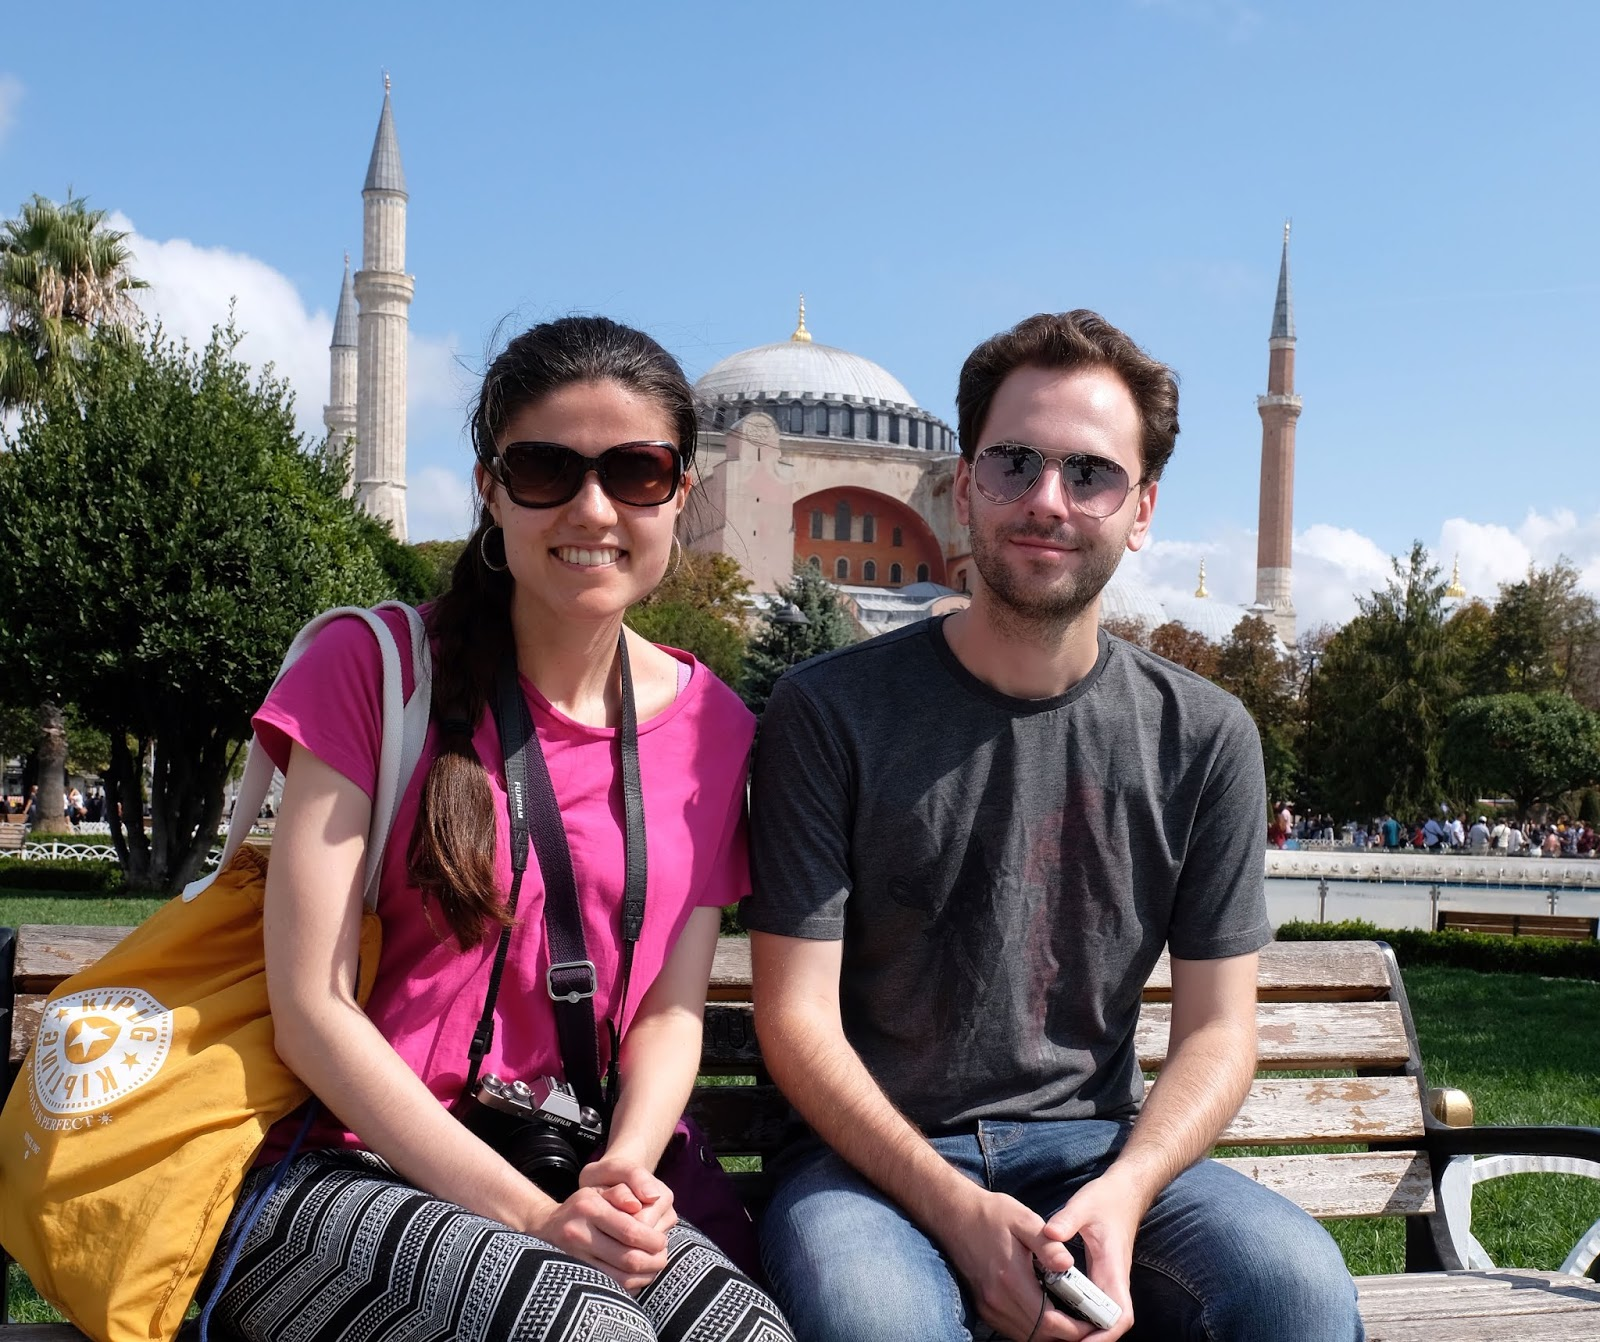 Kat and Stuart outside the Hagia Sophia in Istanbul, Turkey